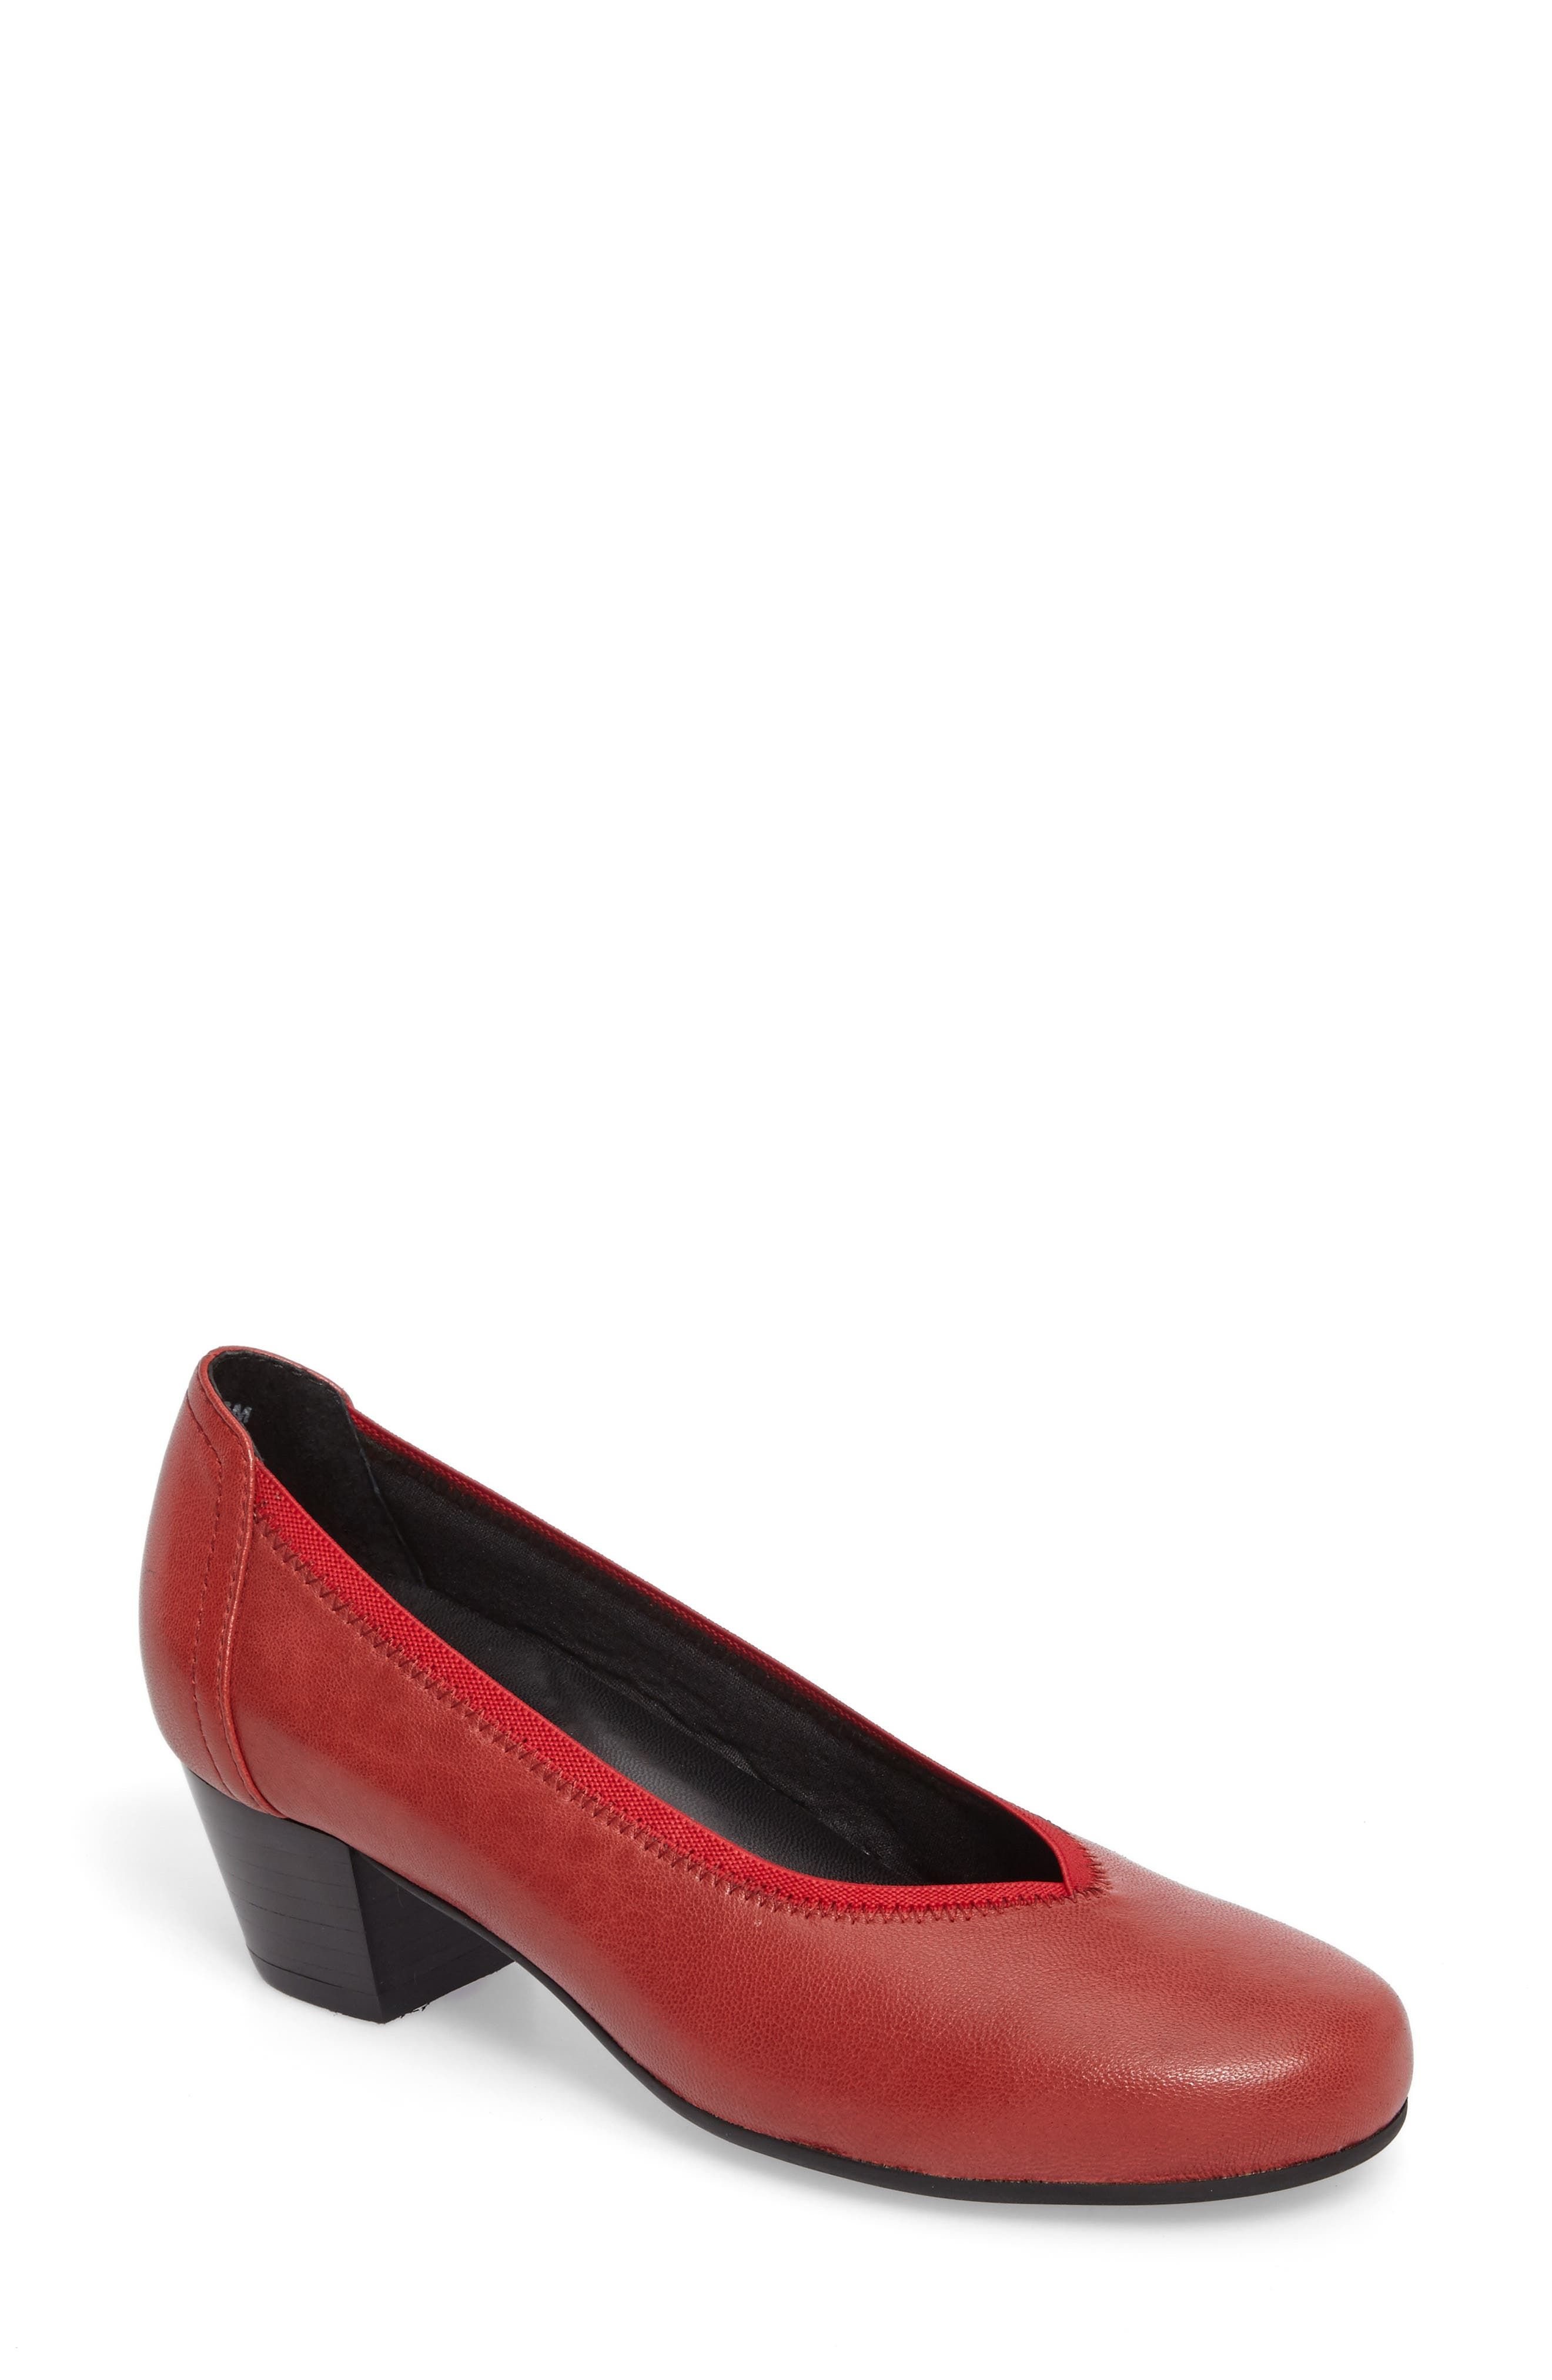 Madera Pump,                         Main,                         color, Red Leather